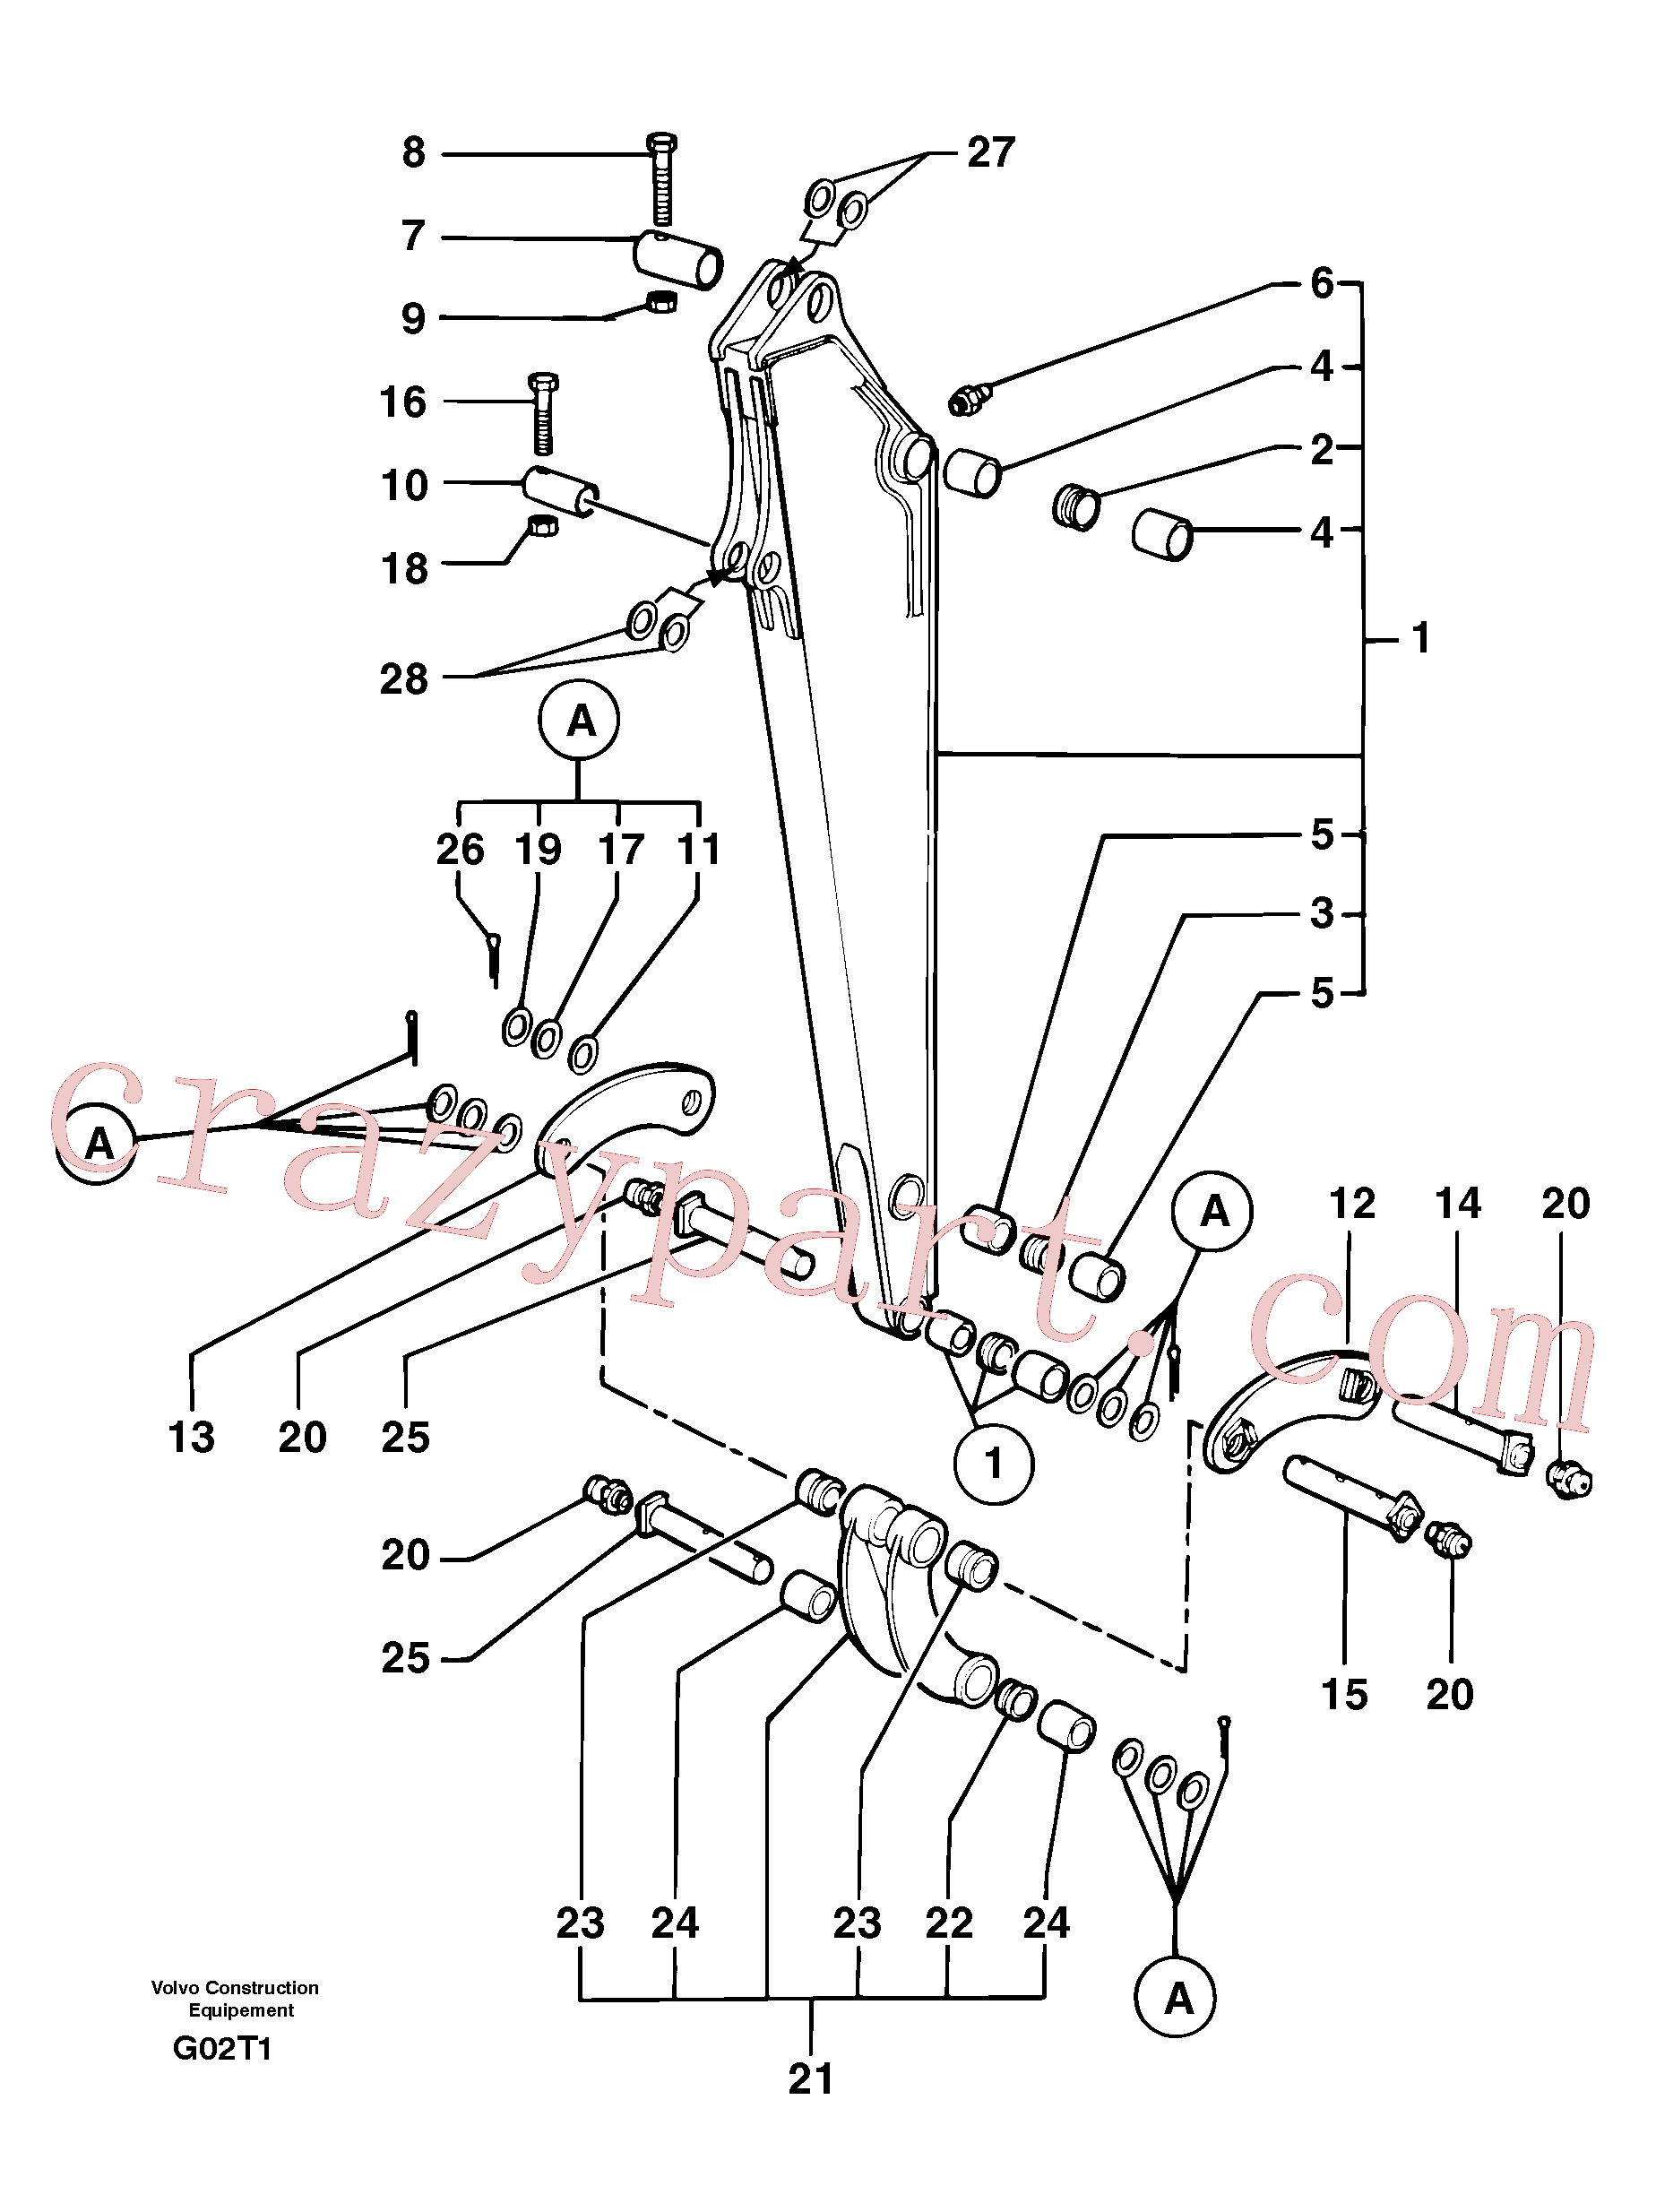 VOE11805829 for Volvo Dipper arm(G02T1 assembly)